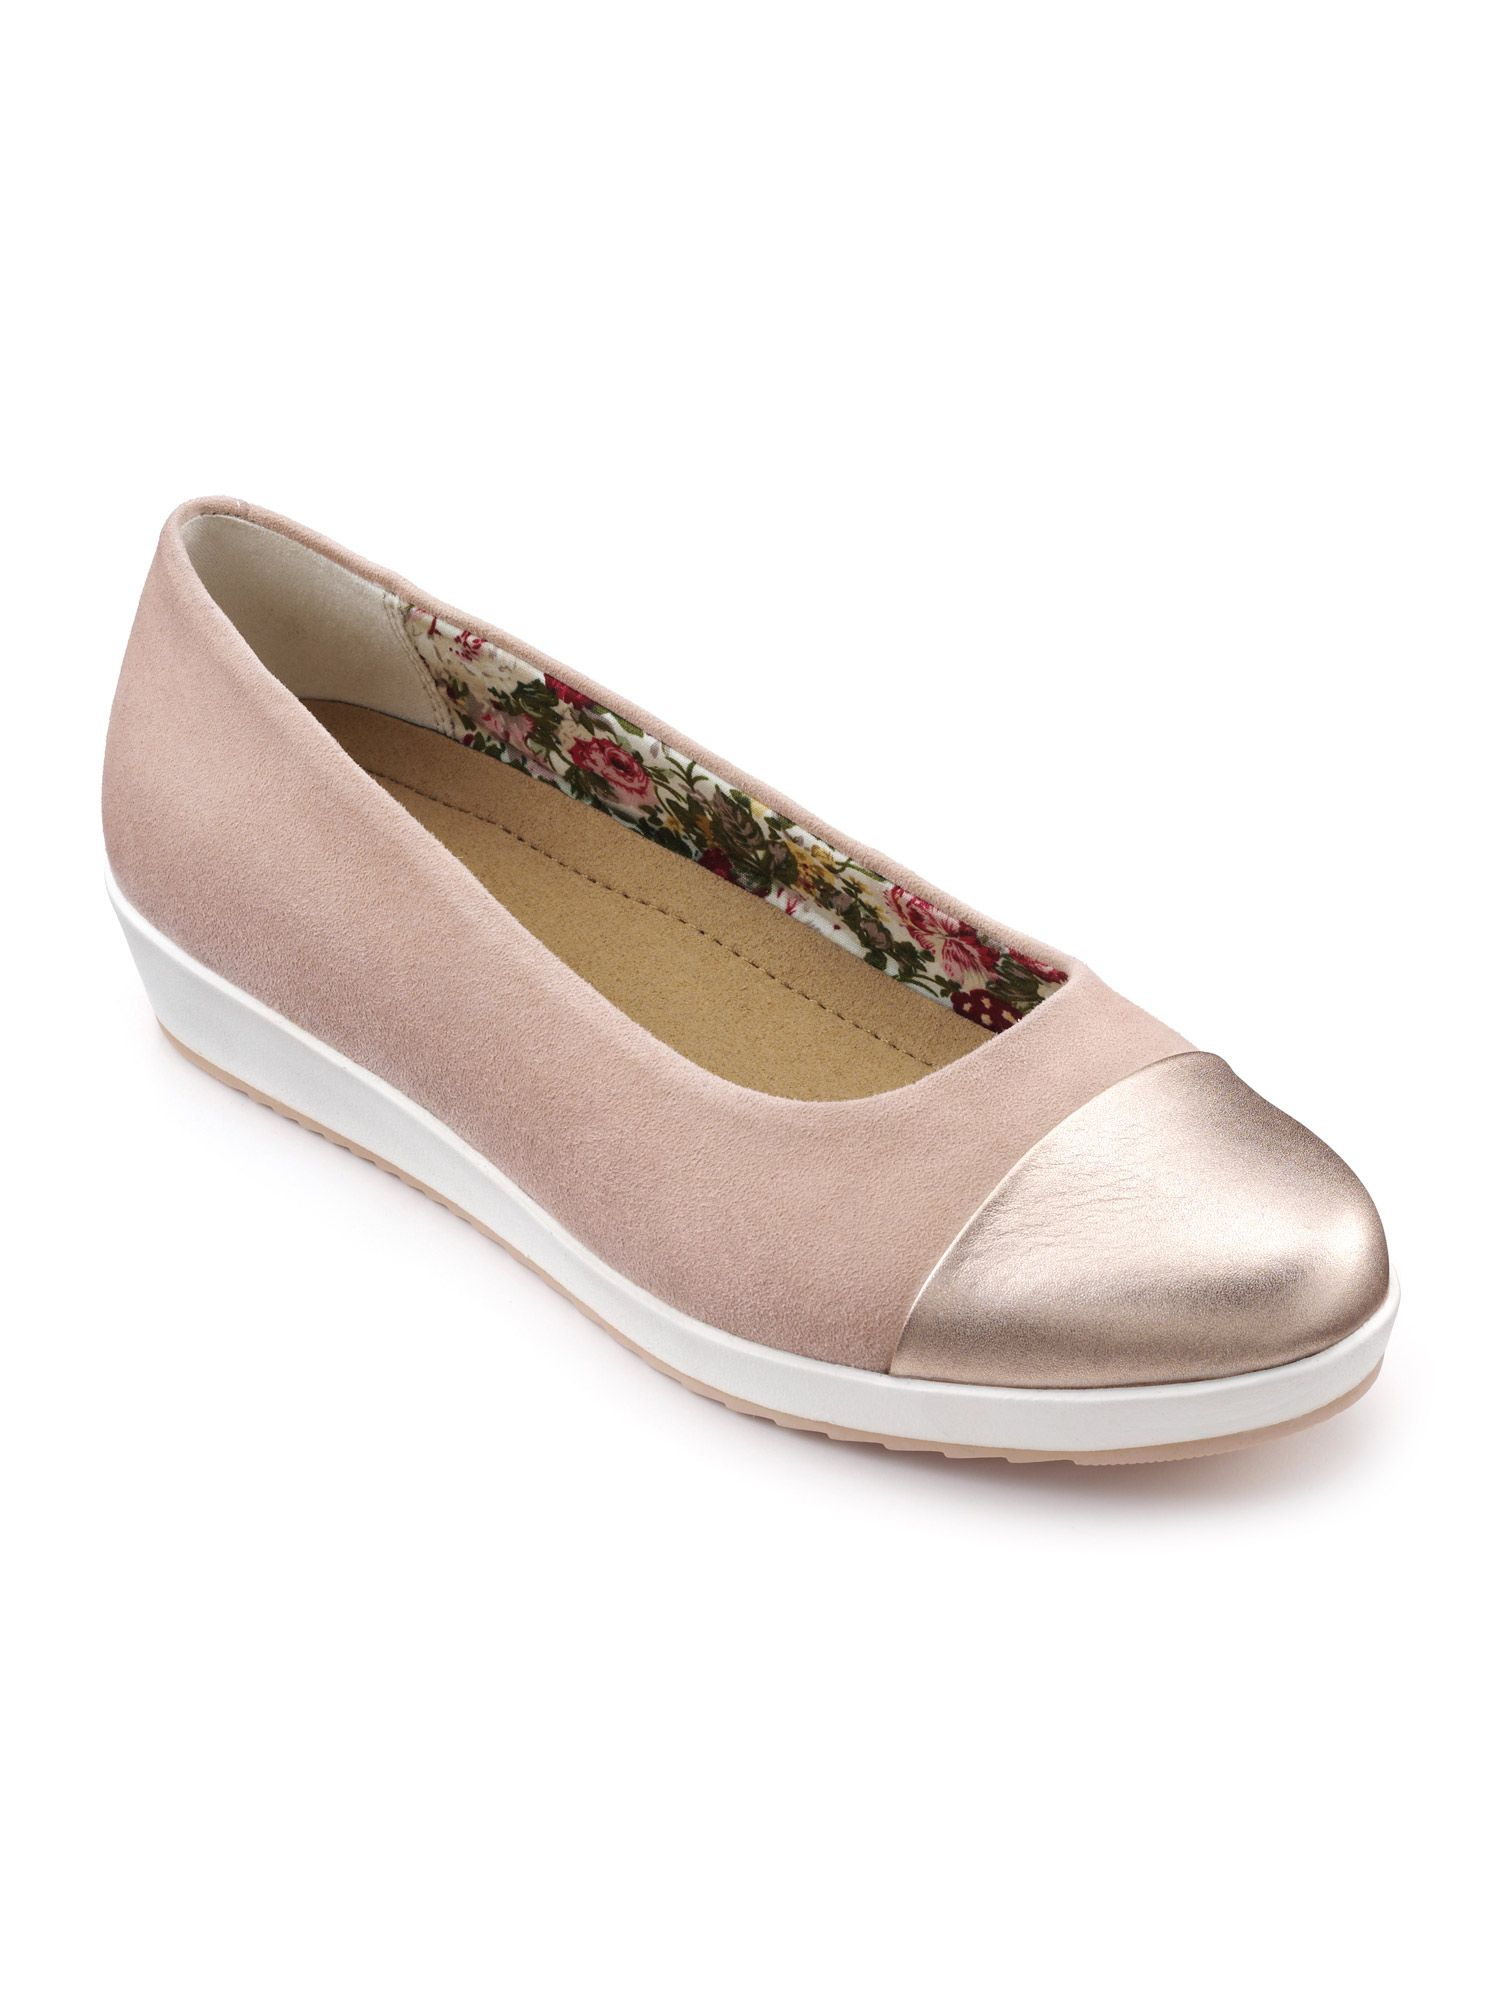 Hotter Angel Dual Fit Slip On Shoe, Powder Pink